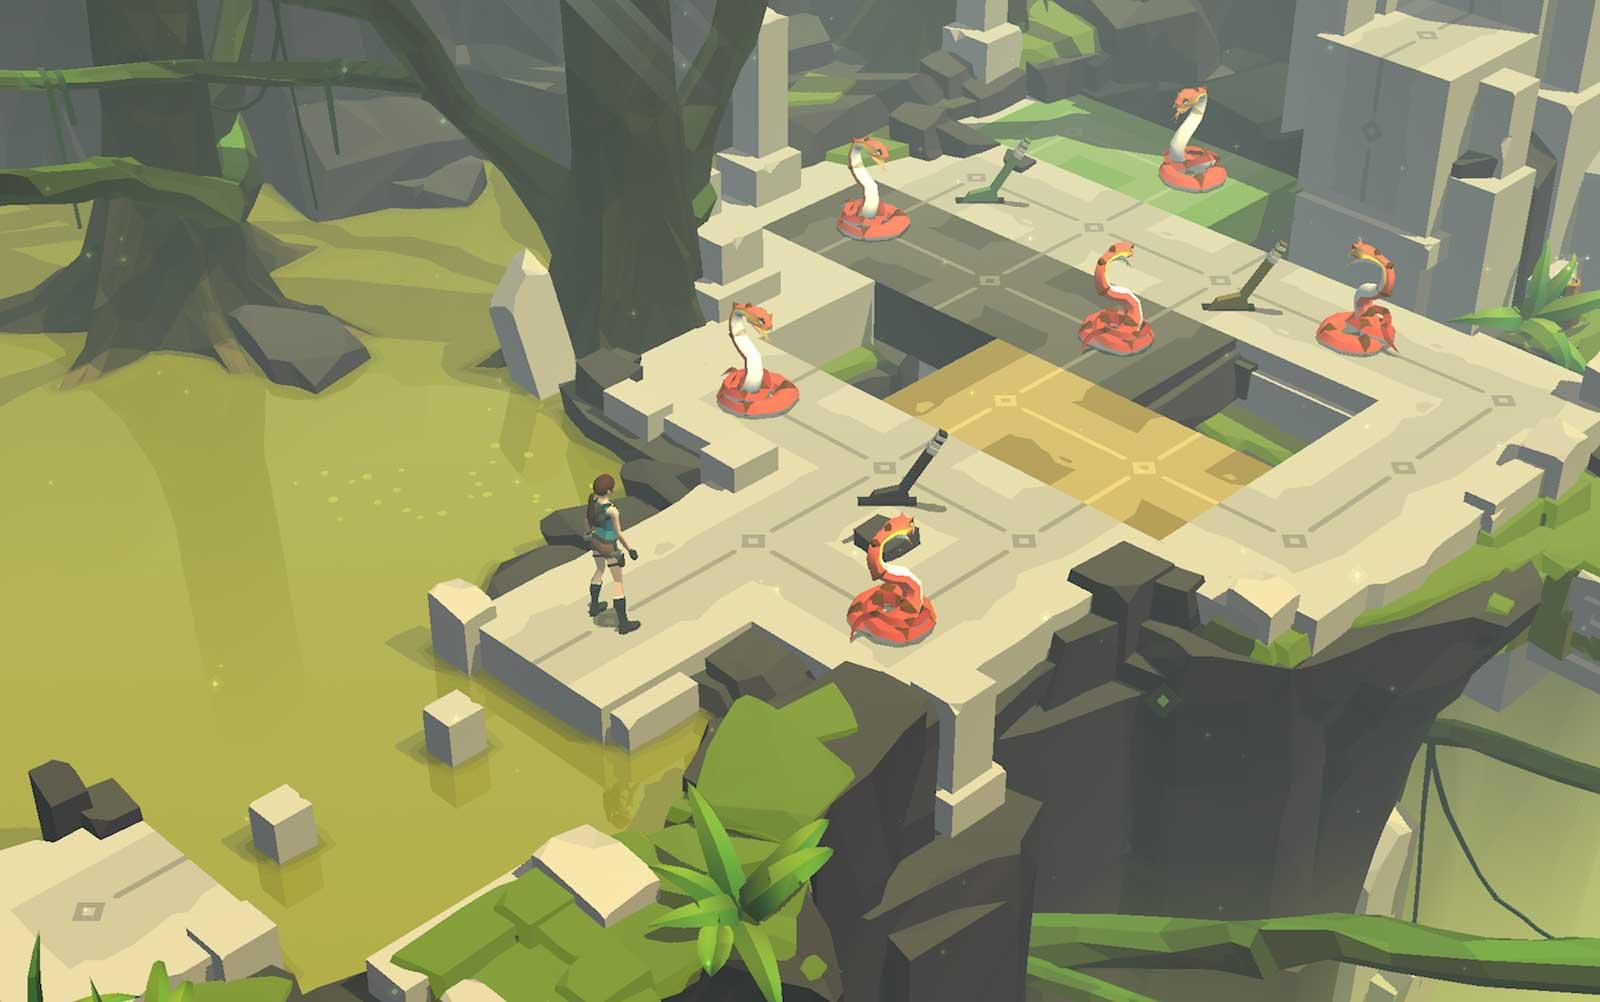 Square Enix has stopped working on 'Go' mobile games   Engadget